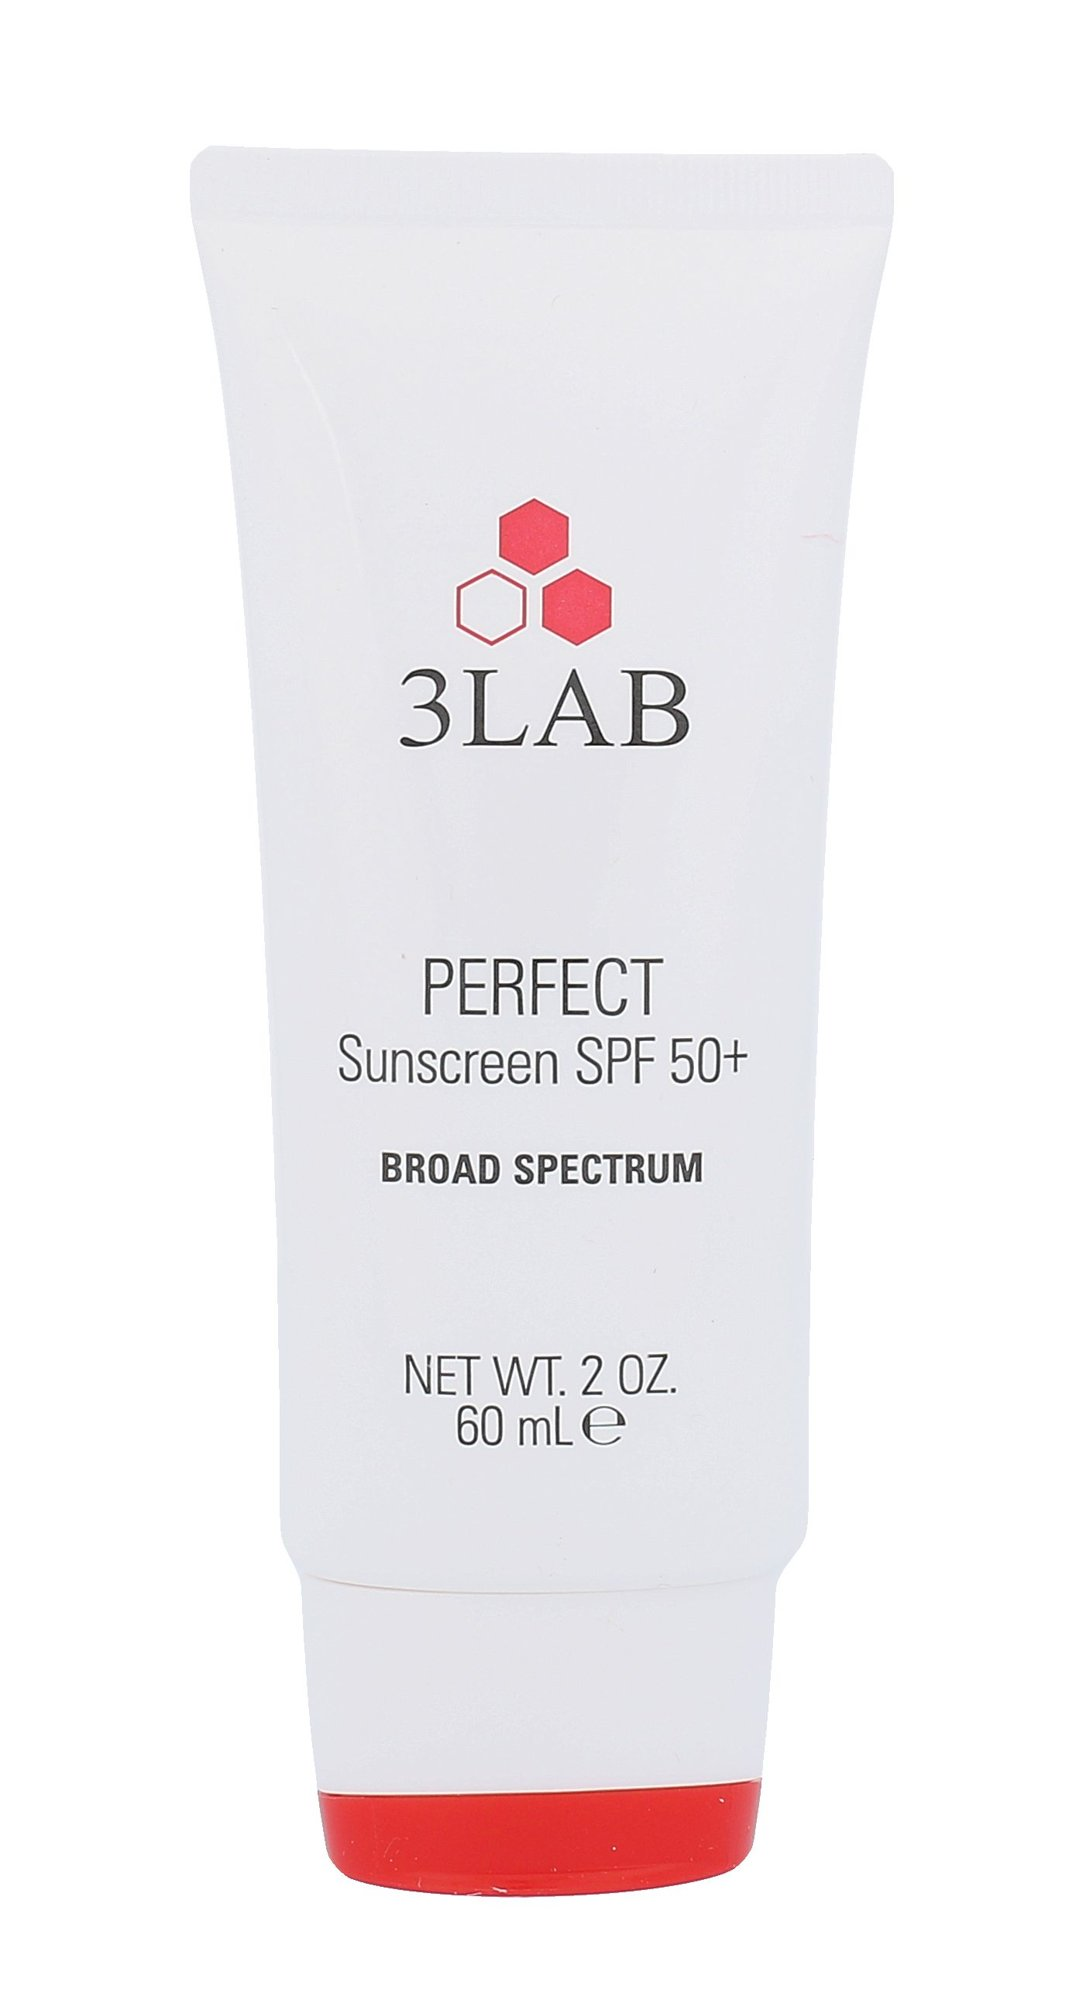 3LAB Perfect Sunscreen SPF50+ Broad Spectrum